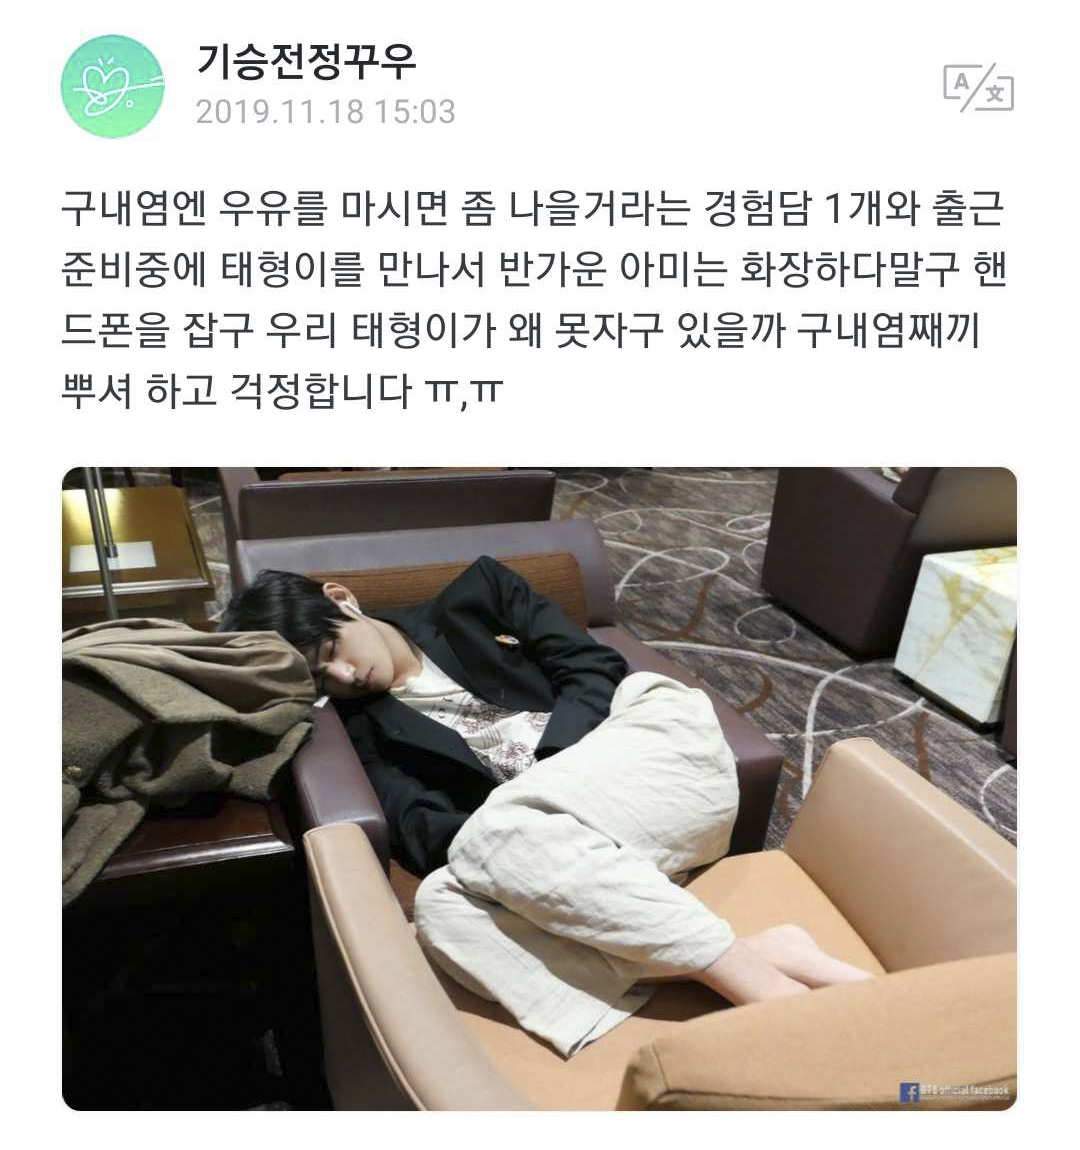 bts v health issues 2